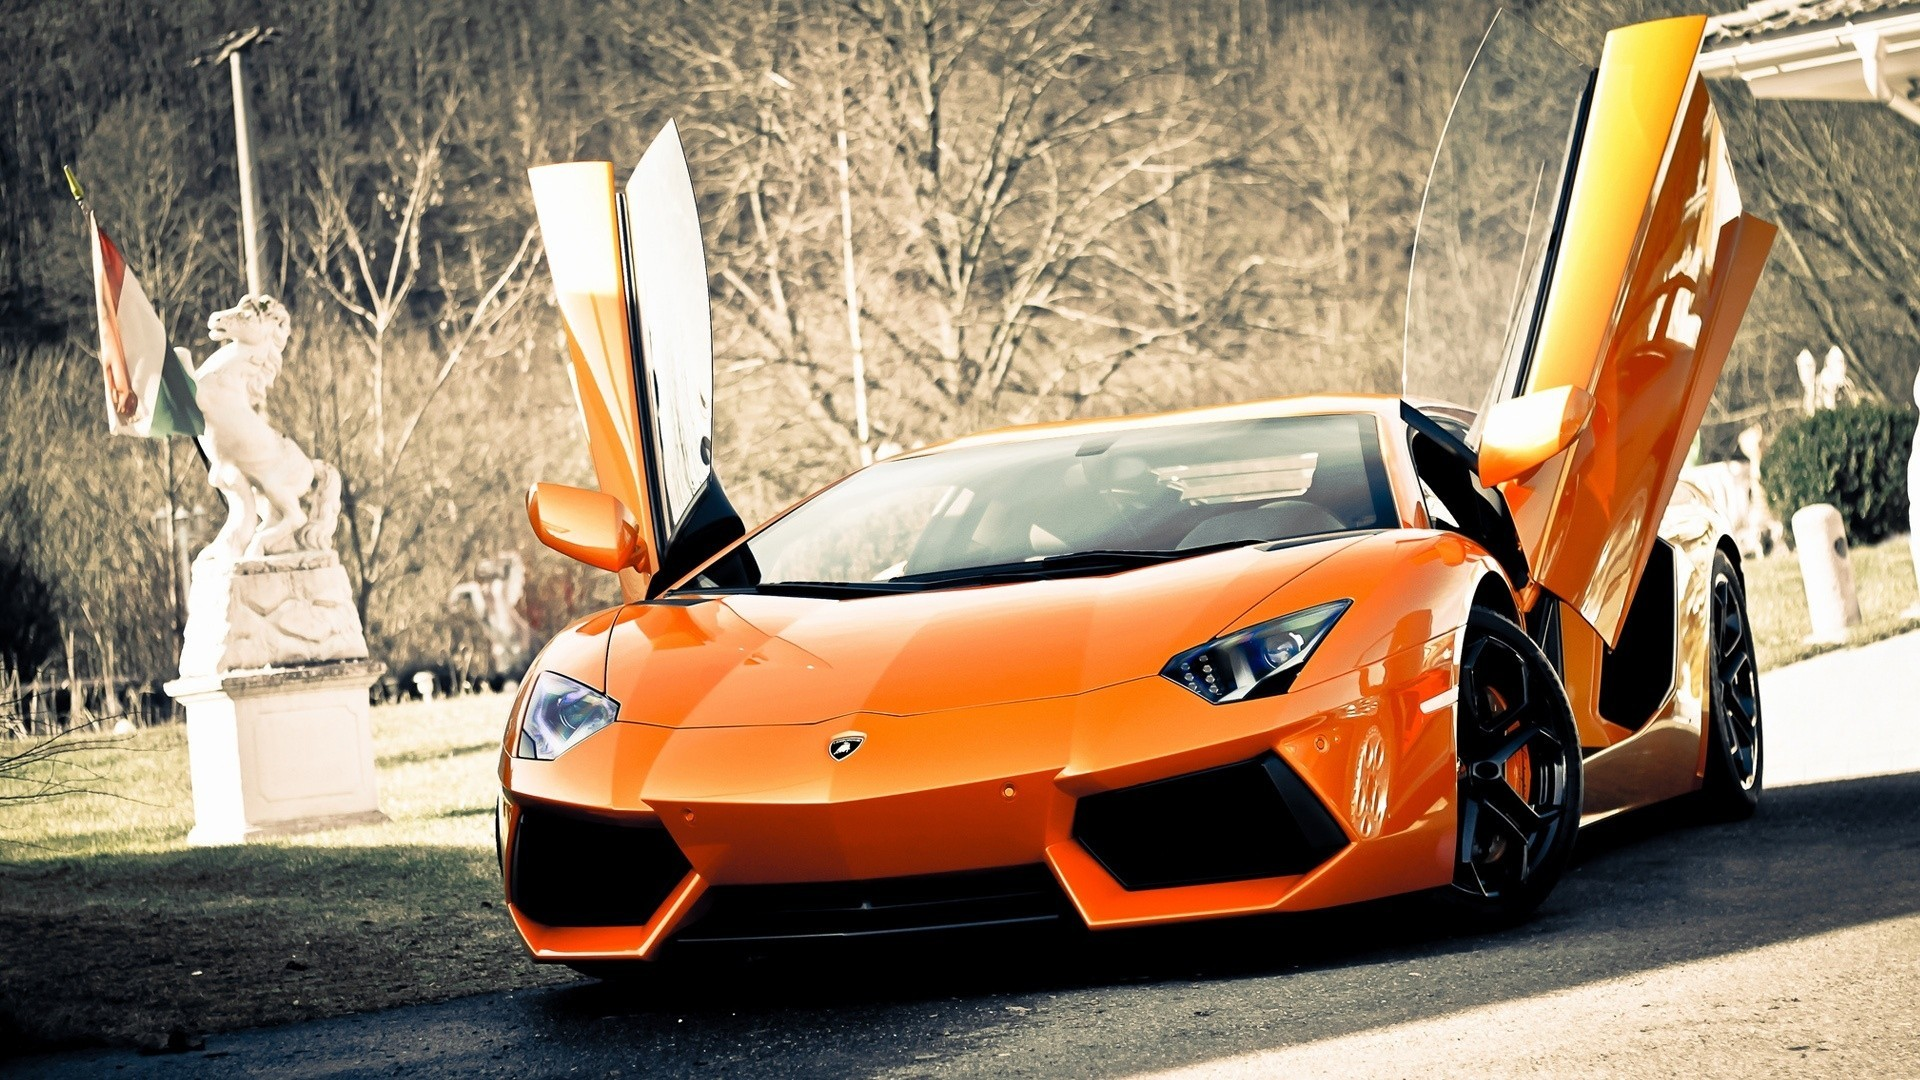 1920x1080 Sports Car Lamborghini Wallpapers Full HD